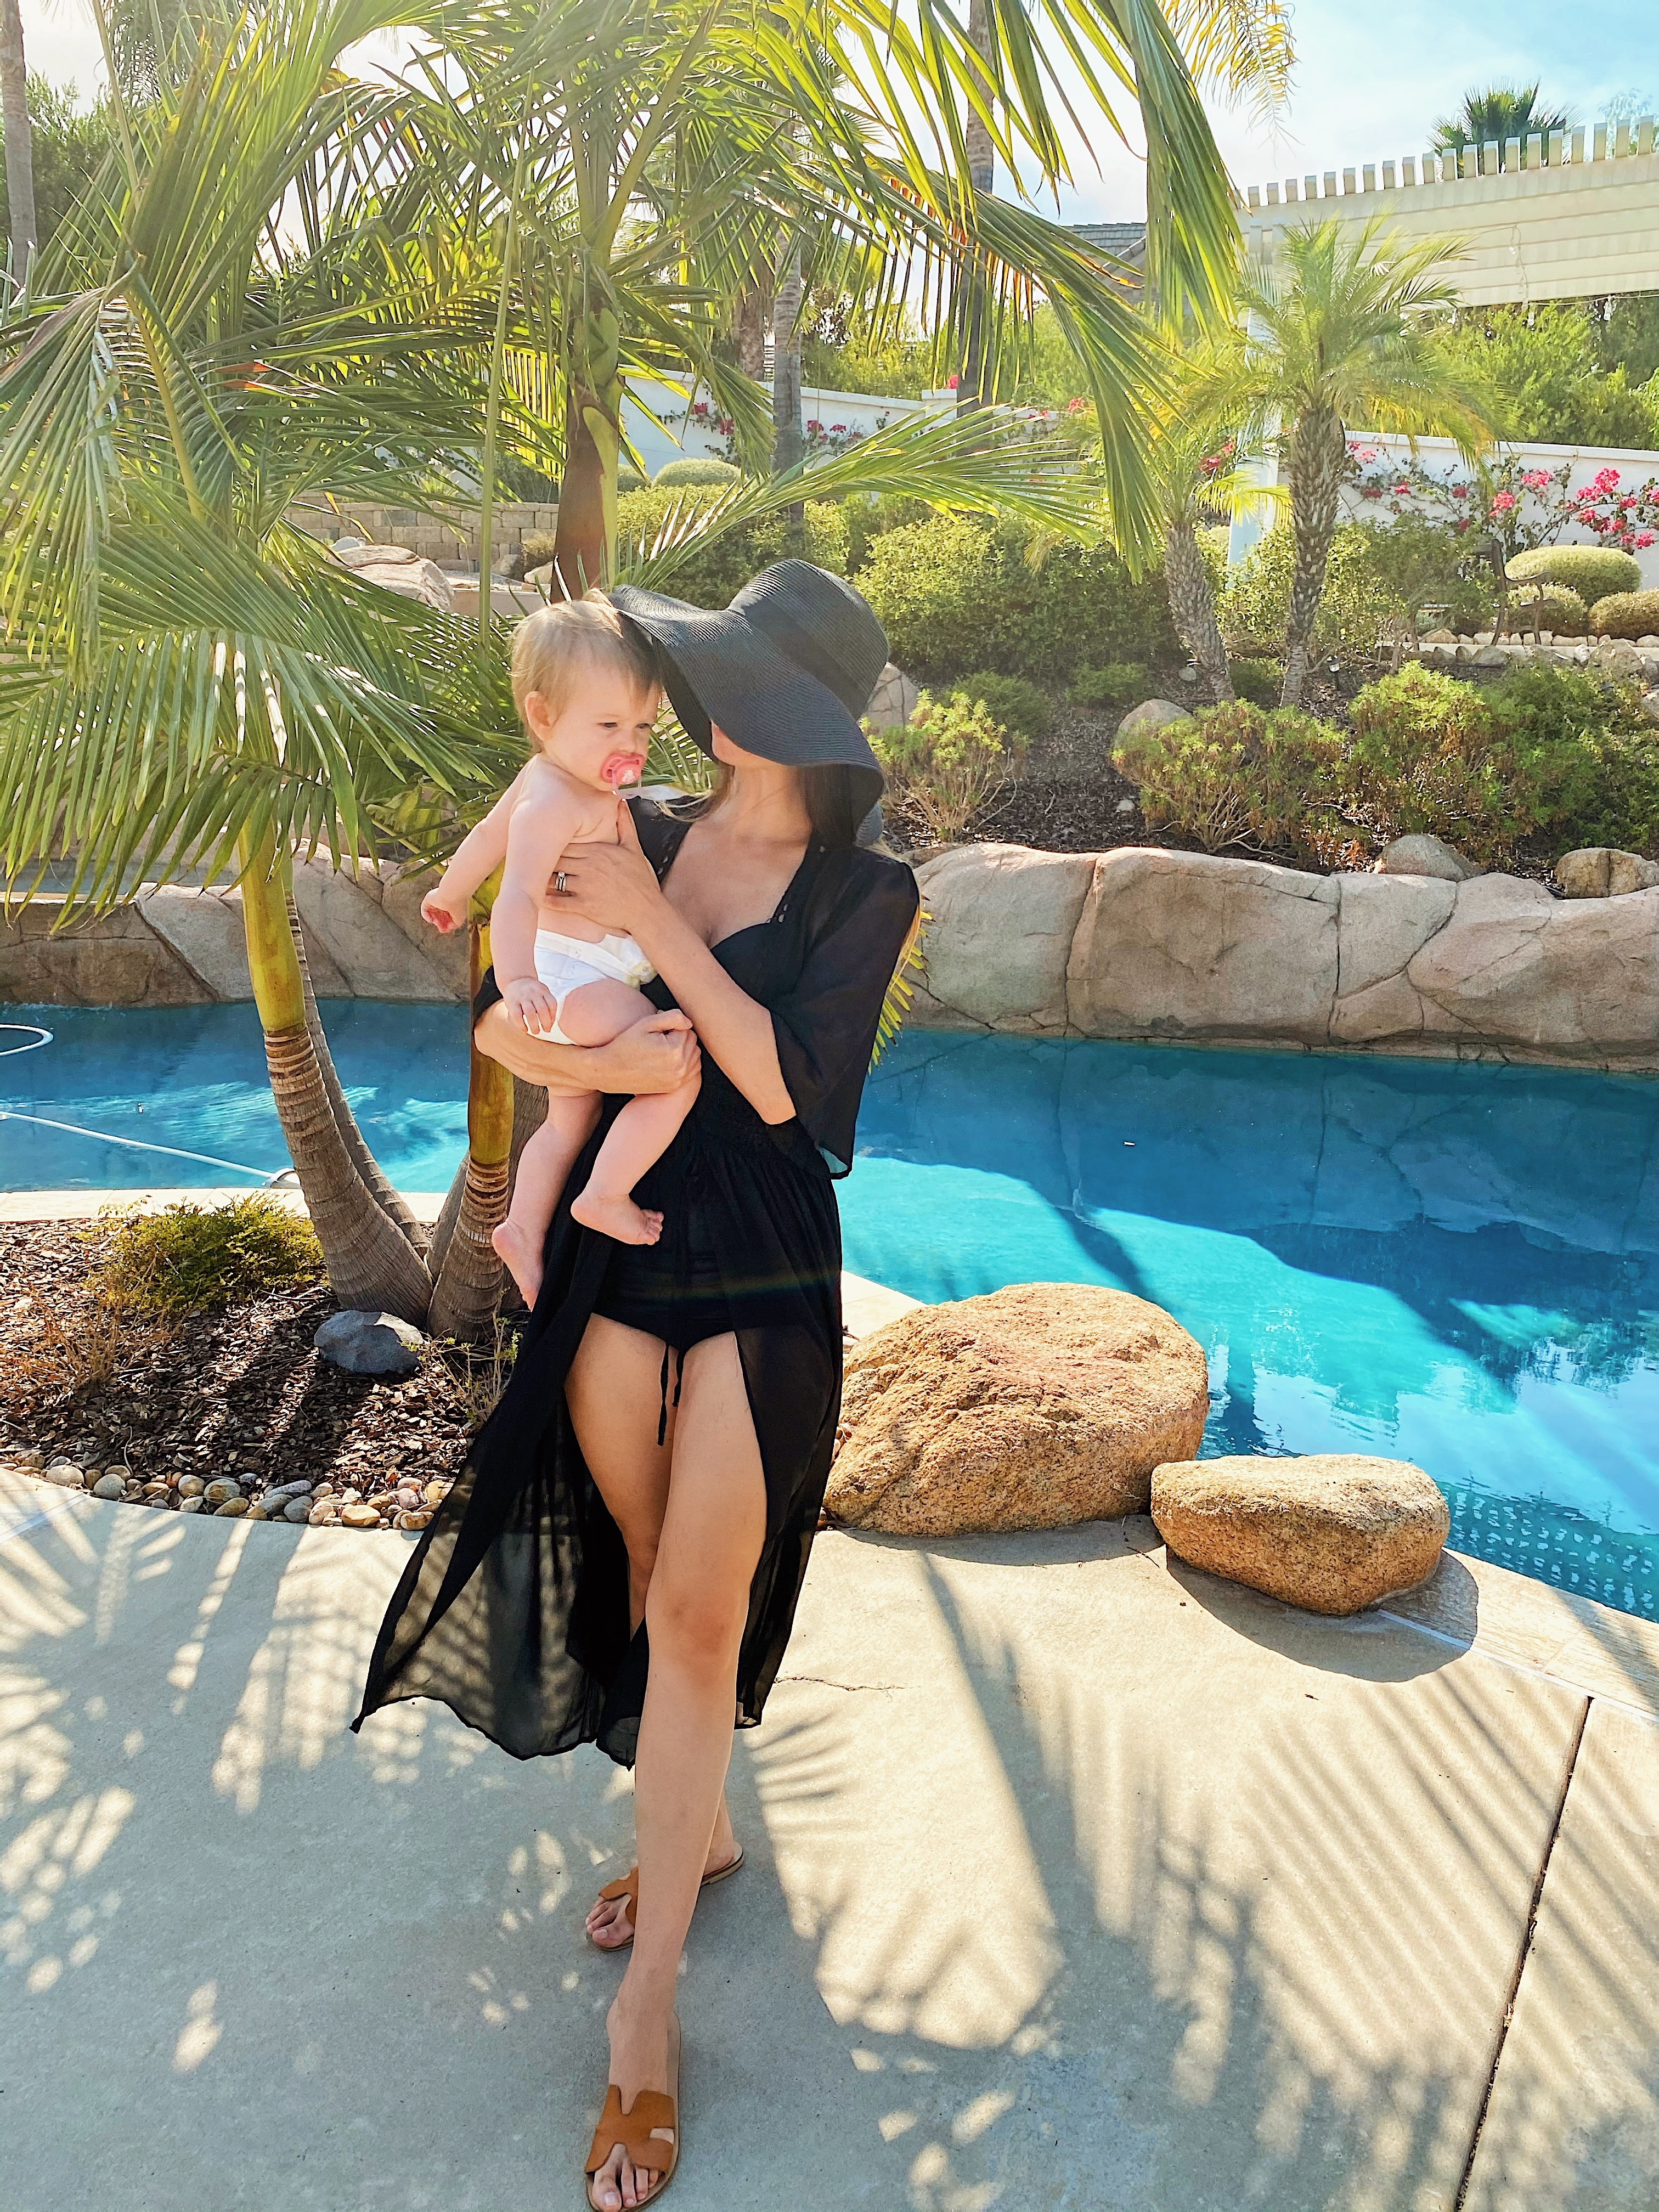 Fashion-swimwear-black vintage retro swimsuit wit long black chiffon swimsuit cover large black floppy hat classic all black pool look beach outfit mother daughter mother baby photos